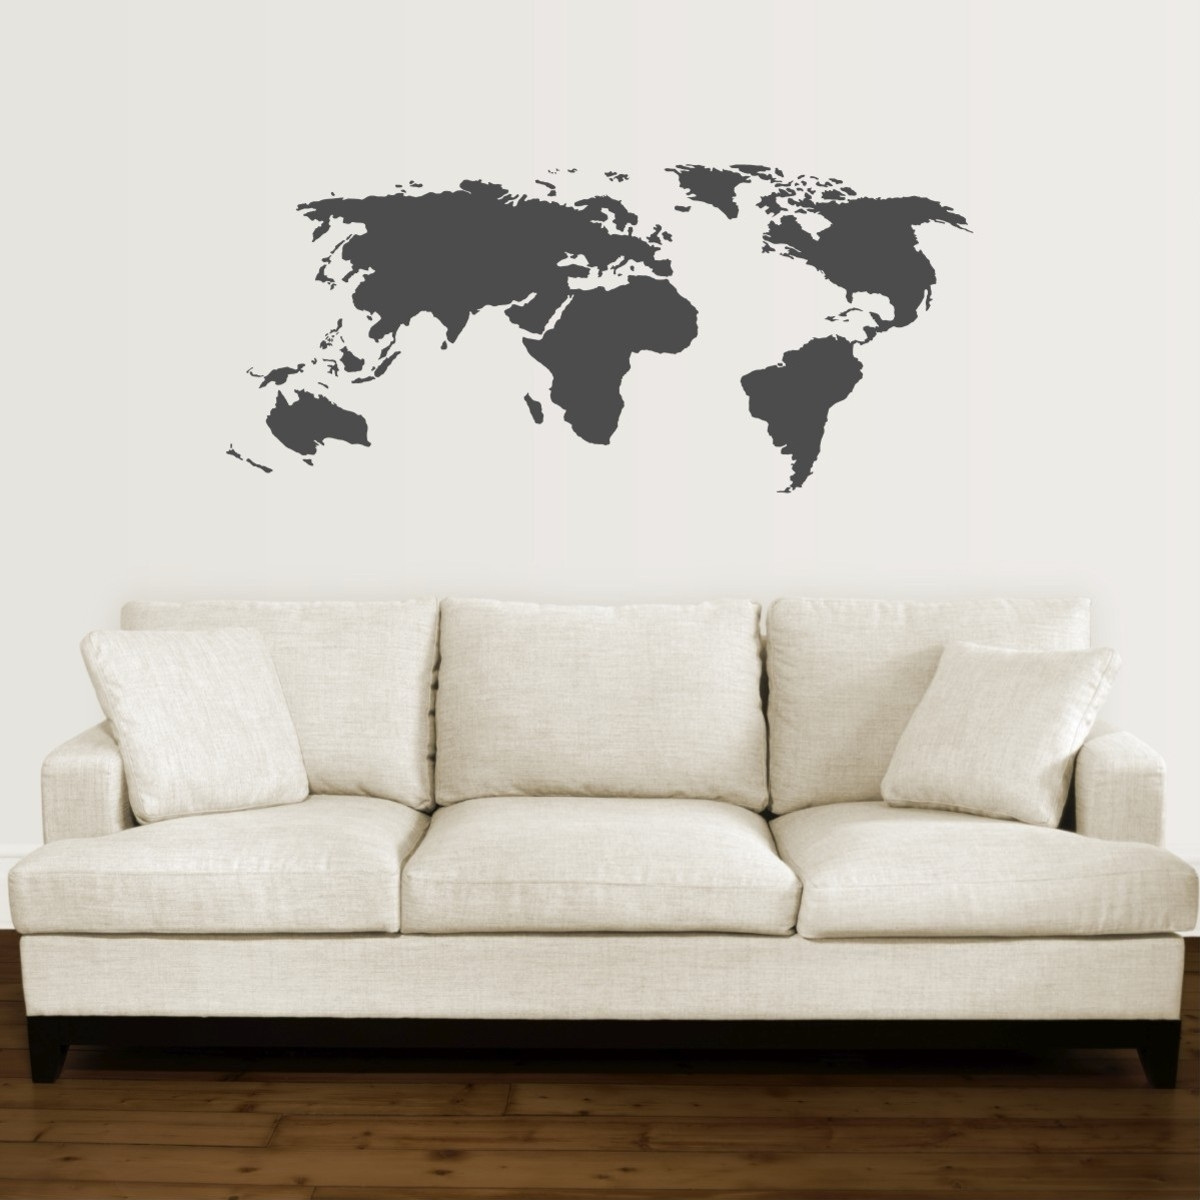 Recent Maps Wall Art Pertaining To 17 Cool Ideas For World Map Wall Art – Live Diy Ideas (Gallery 14 of 20)